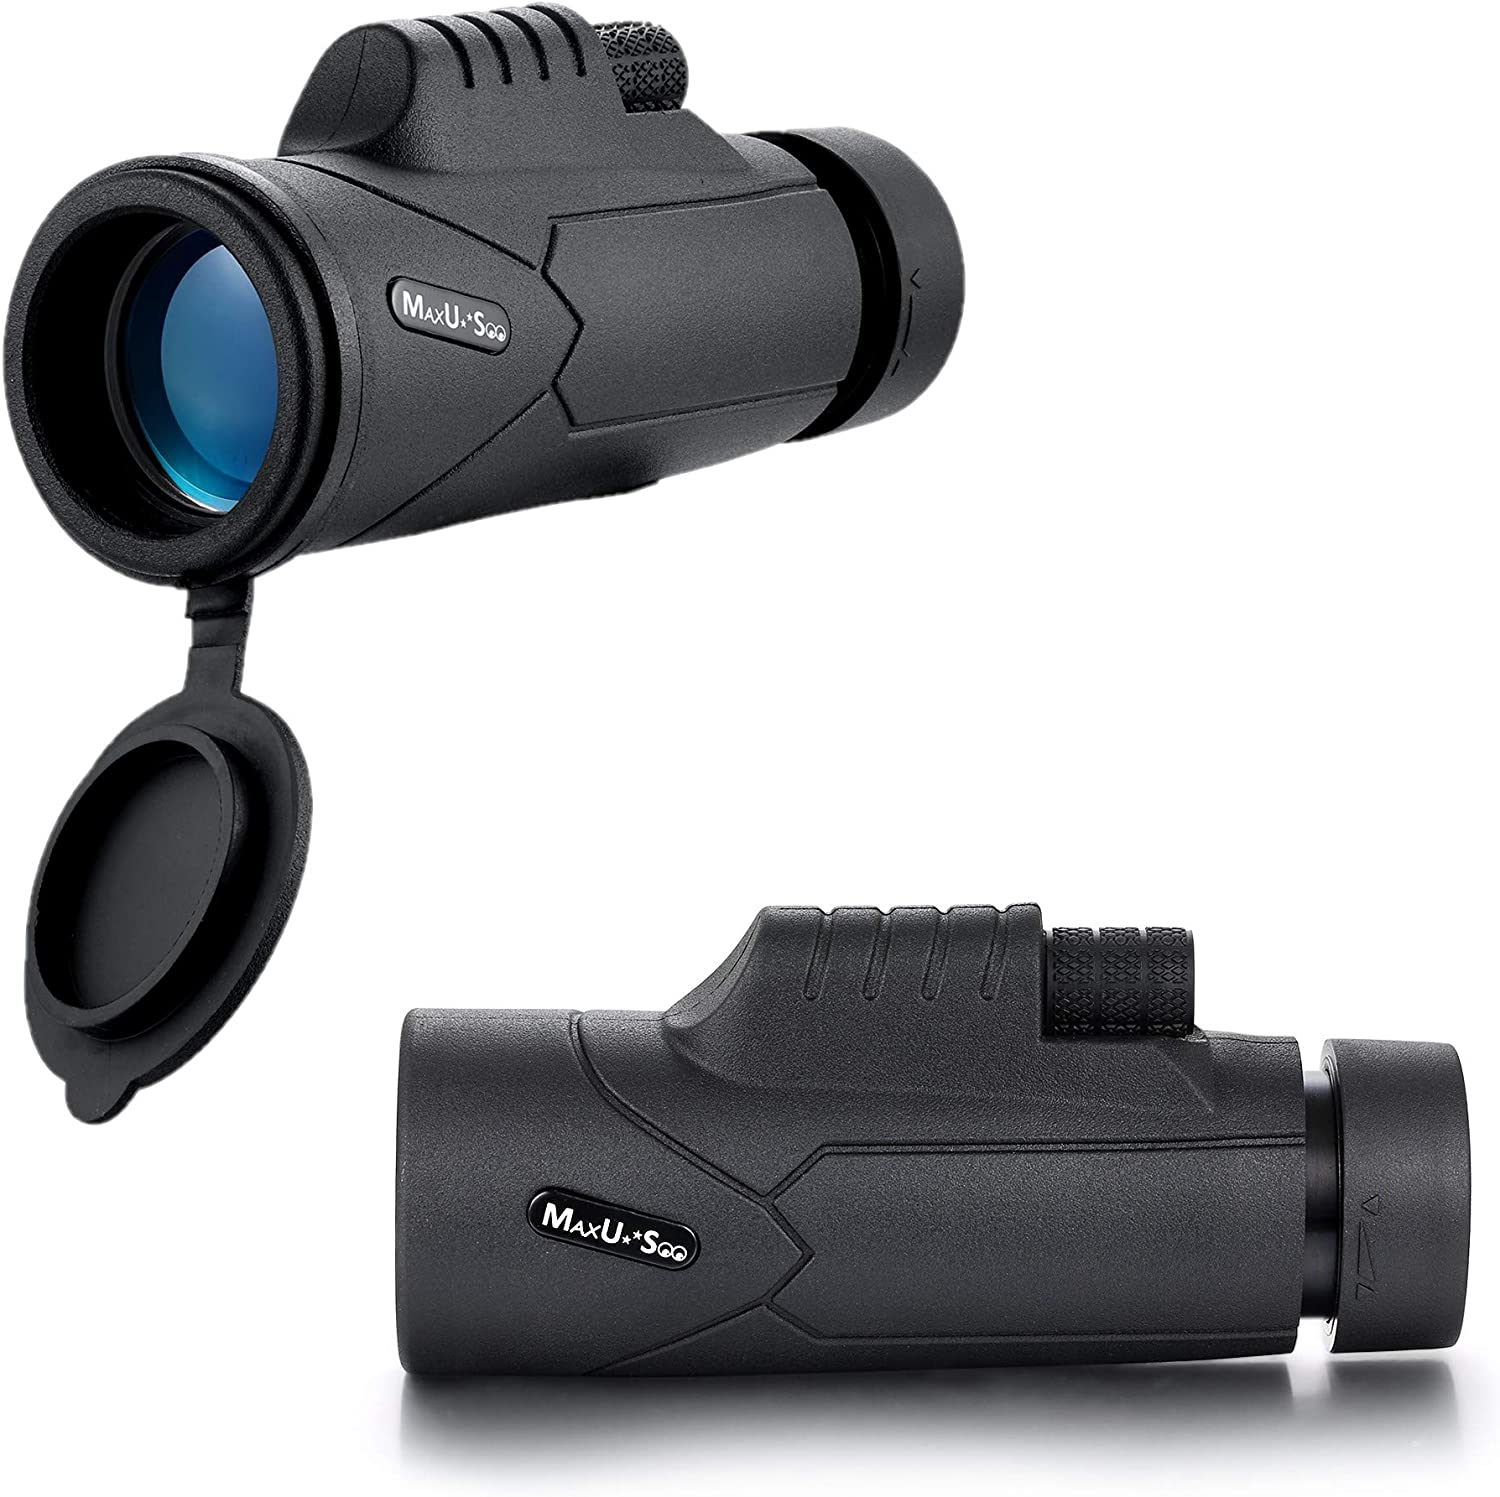 MaxUSee Mesa Cheap mail order shopping Mall Portable 10X42 HD Monocular with Prism BAK4 FMC Lens for